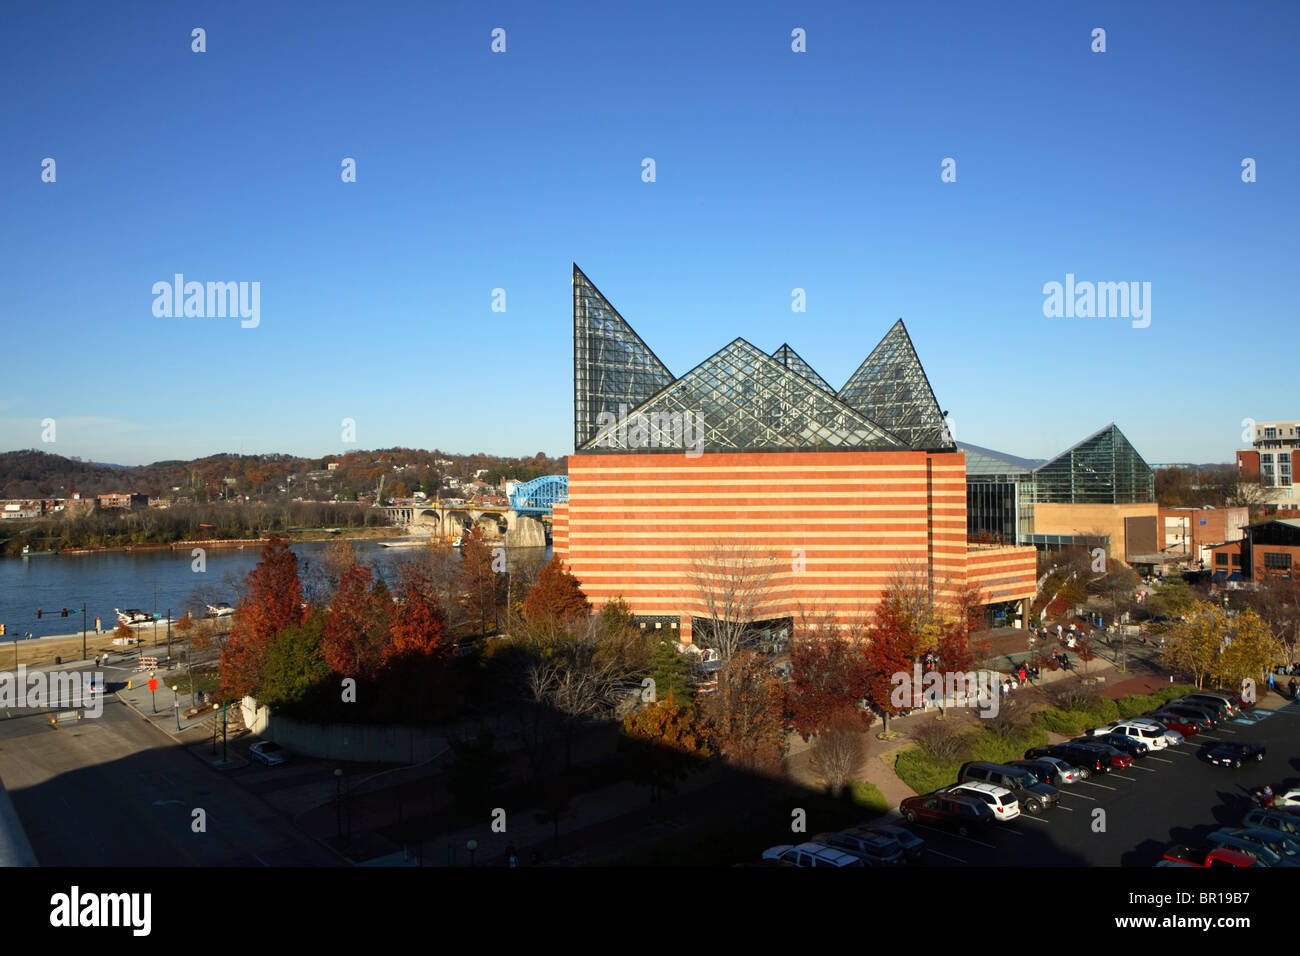 The Tennessee Aquarium In Downtown Chattanooga Tn Stock